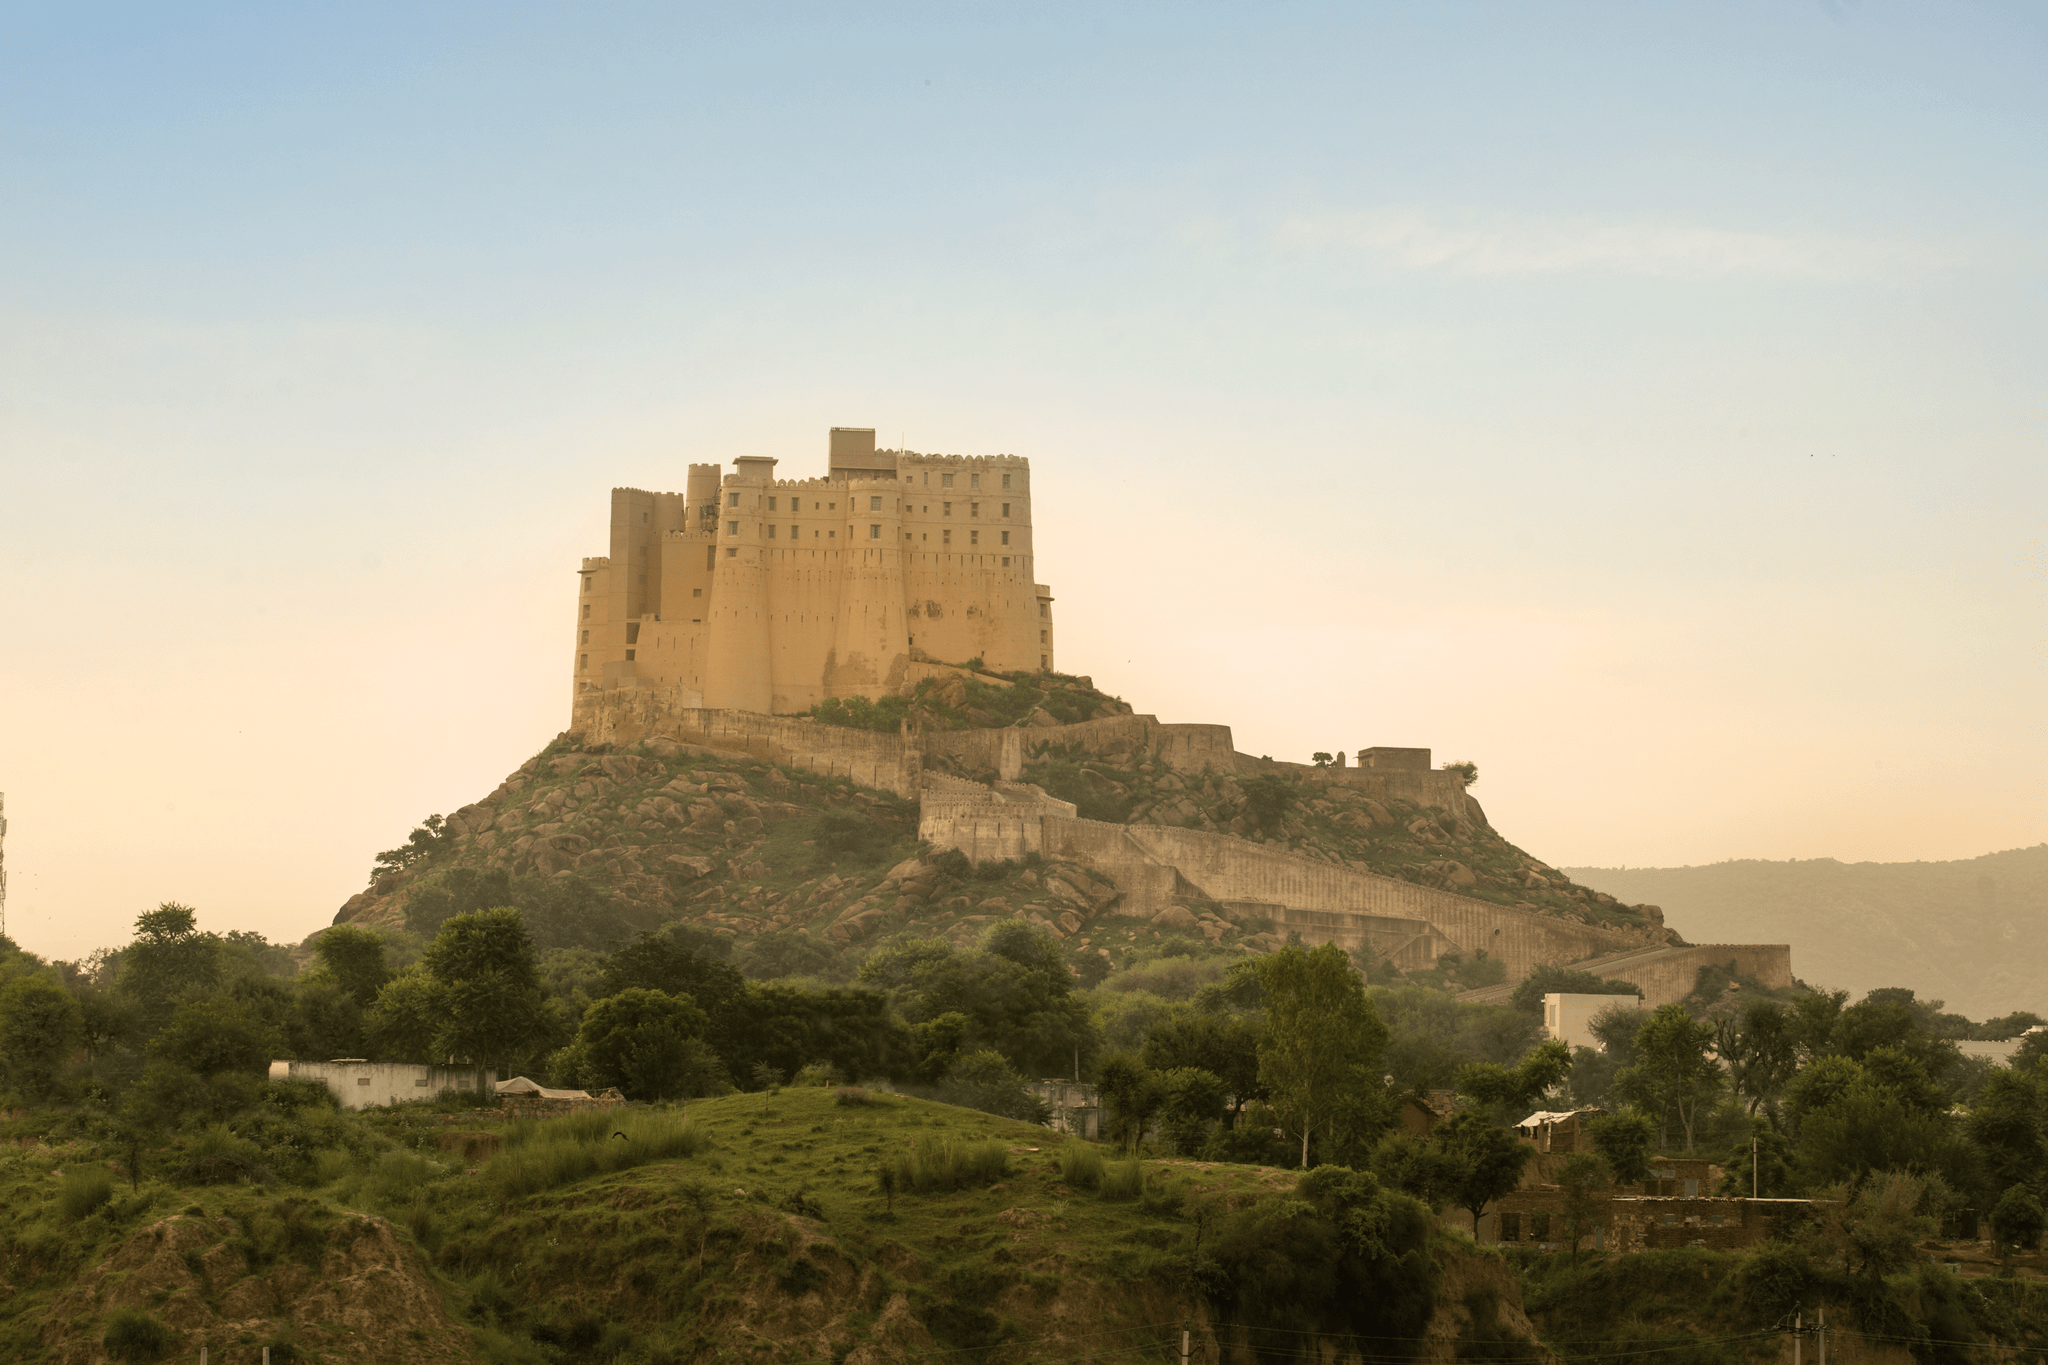 Alila Fort outside Jaipur in north India